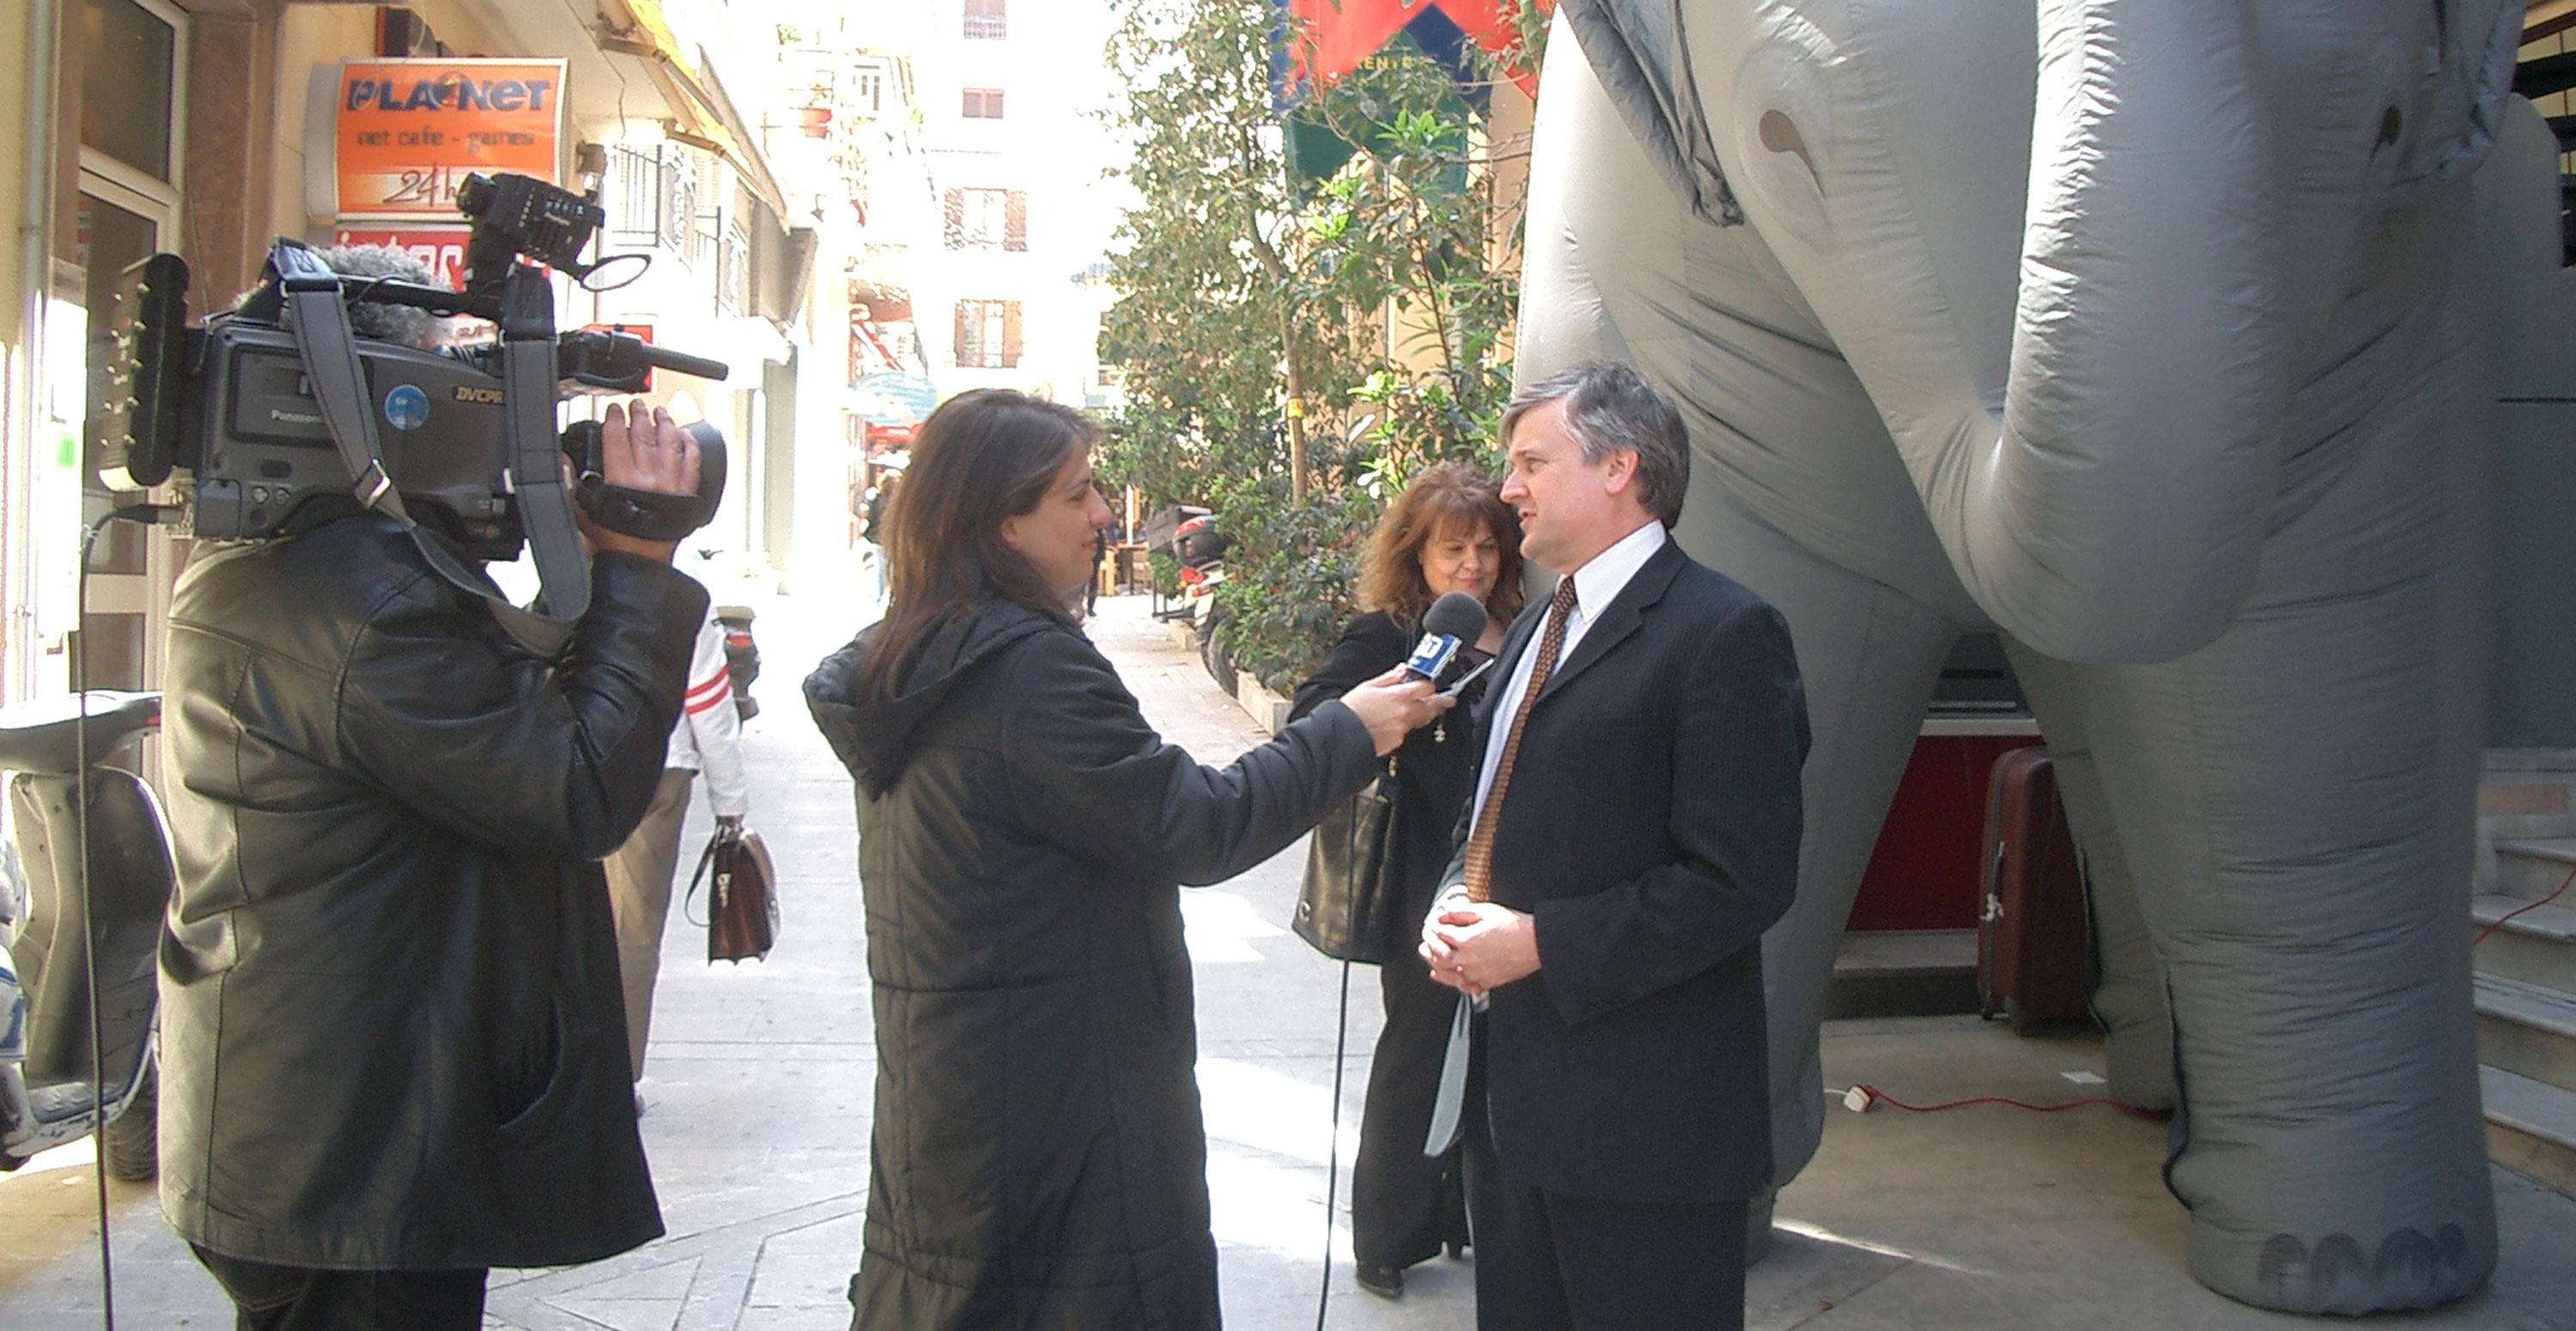 Tim Phillips is interviewed during the launch